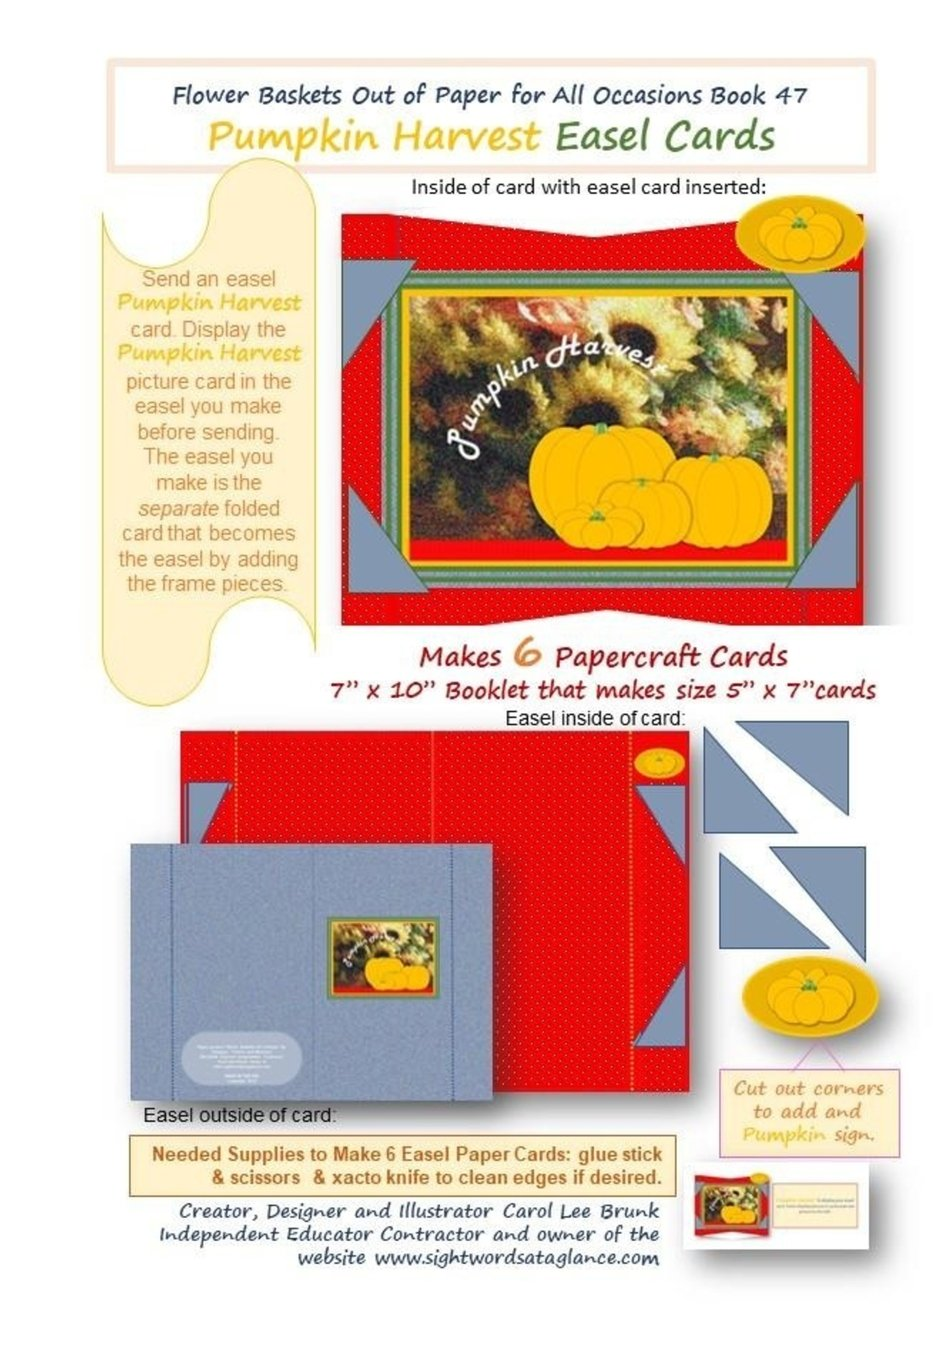 FLOWER BASKETS OUT OF PAPER FOR ALL OCCASSIONS Book 47: Pumpkin Harvest Easel Cards (Volume 52) PDF